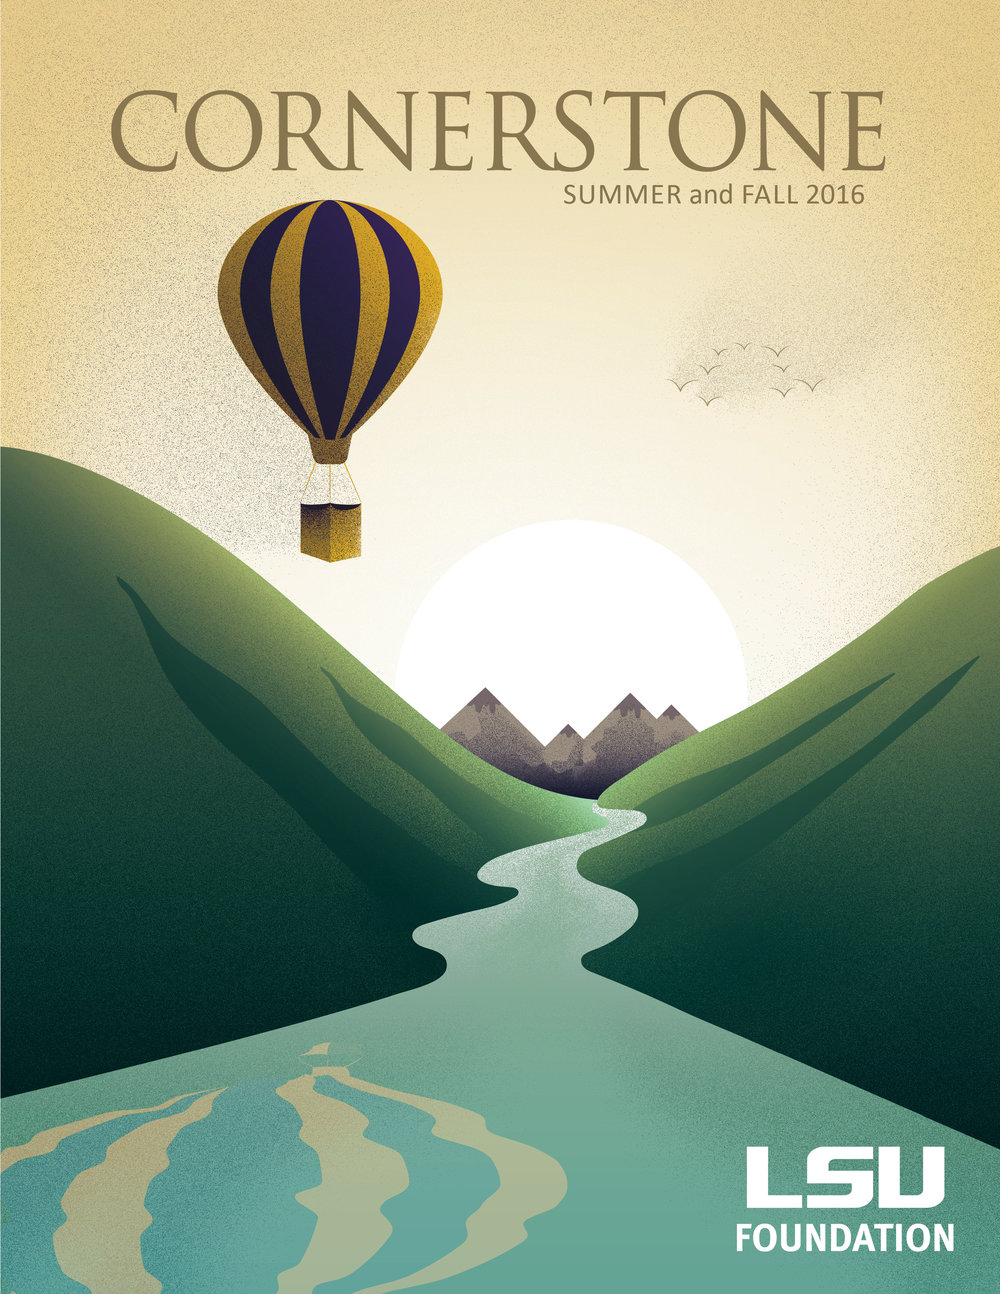 Cornerstone Redesign - Cornerstone is a publication for alumni and donors who give to Louisiana State University. For the summer and fall issue, the client wanted the cover to express the hope the University had in regards to the budget crisis that was effecting the campus. To illustrate that, I used a hot air balloon to convey the message of optimism that was needed to surmount the dilemna. For the interior, previous issues were all designed by various designers assigned to the project so my job was to create a template going forward for other creatives to use including a grid structure, typeface choices, photo styles, pull quotes, etc. to create a more consistent look for the editorial piece.